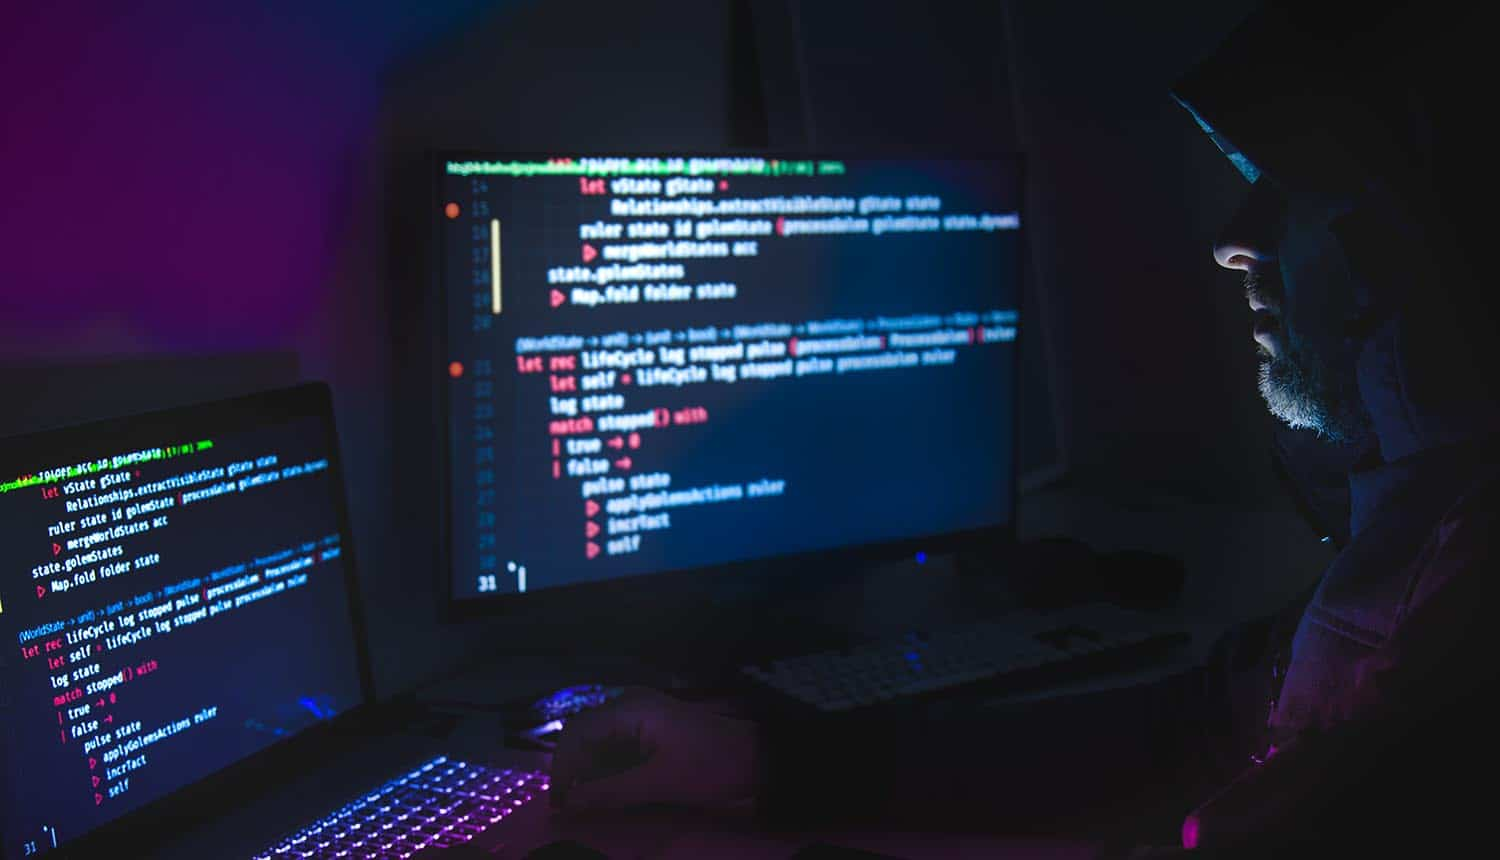 Silhouette of hooded, hacker using laptop showing API security issues